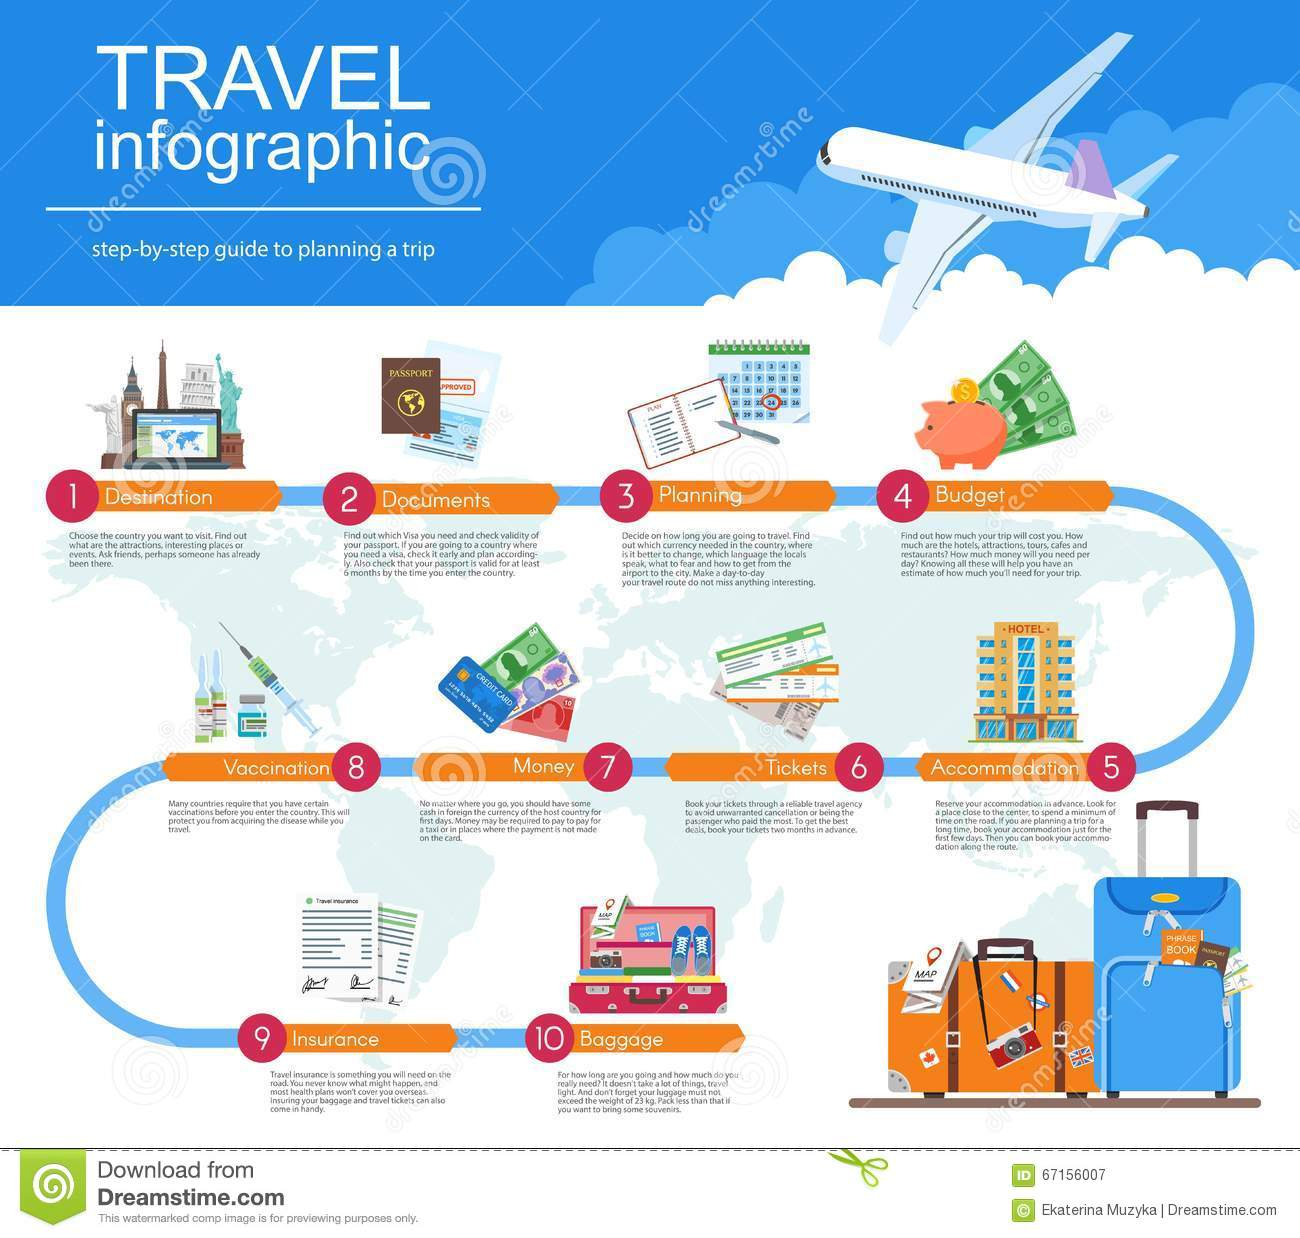 Plan Your Travel Infographic Guide Vacation Booking